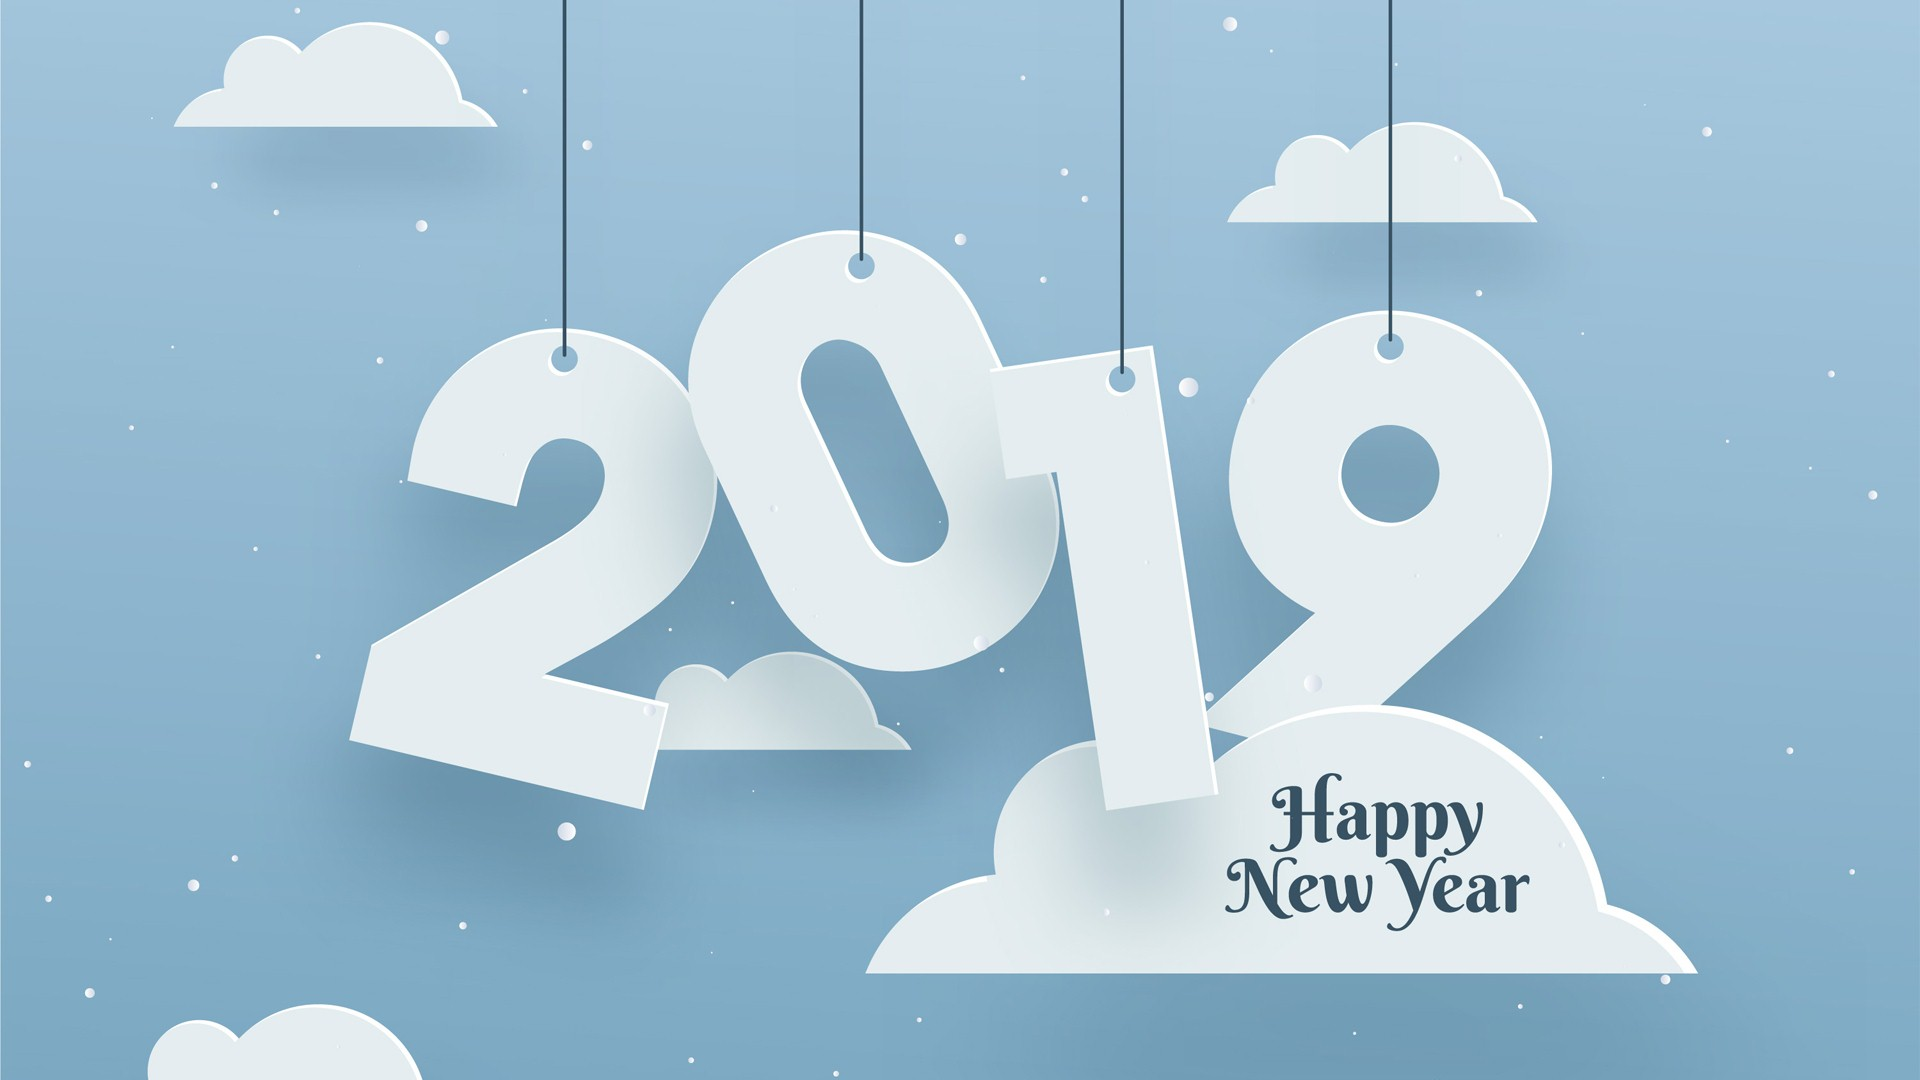 Happy New Year 2019 Clouds